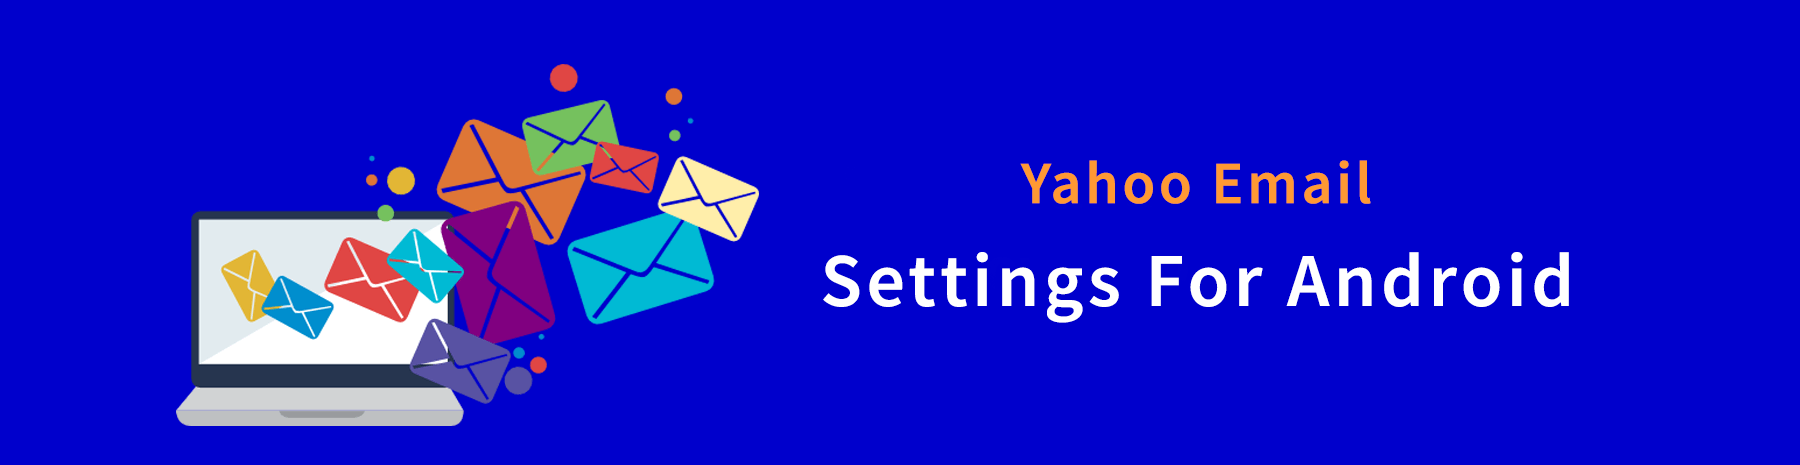 Yahoo-mail-Settings-For-Android